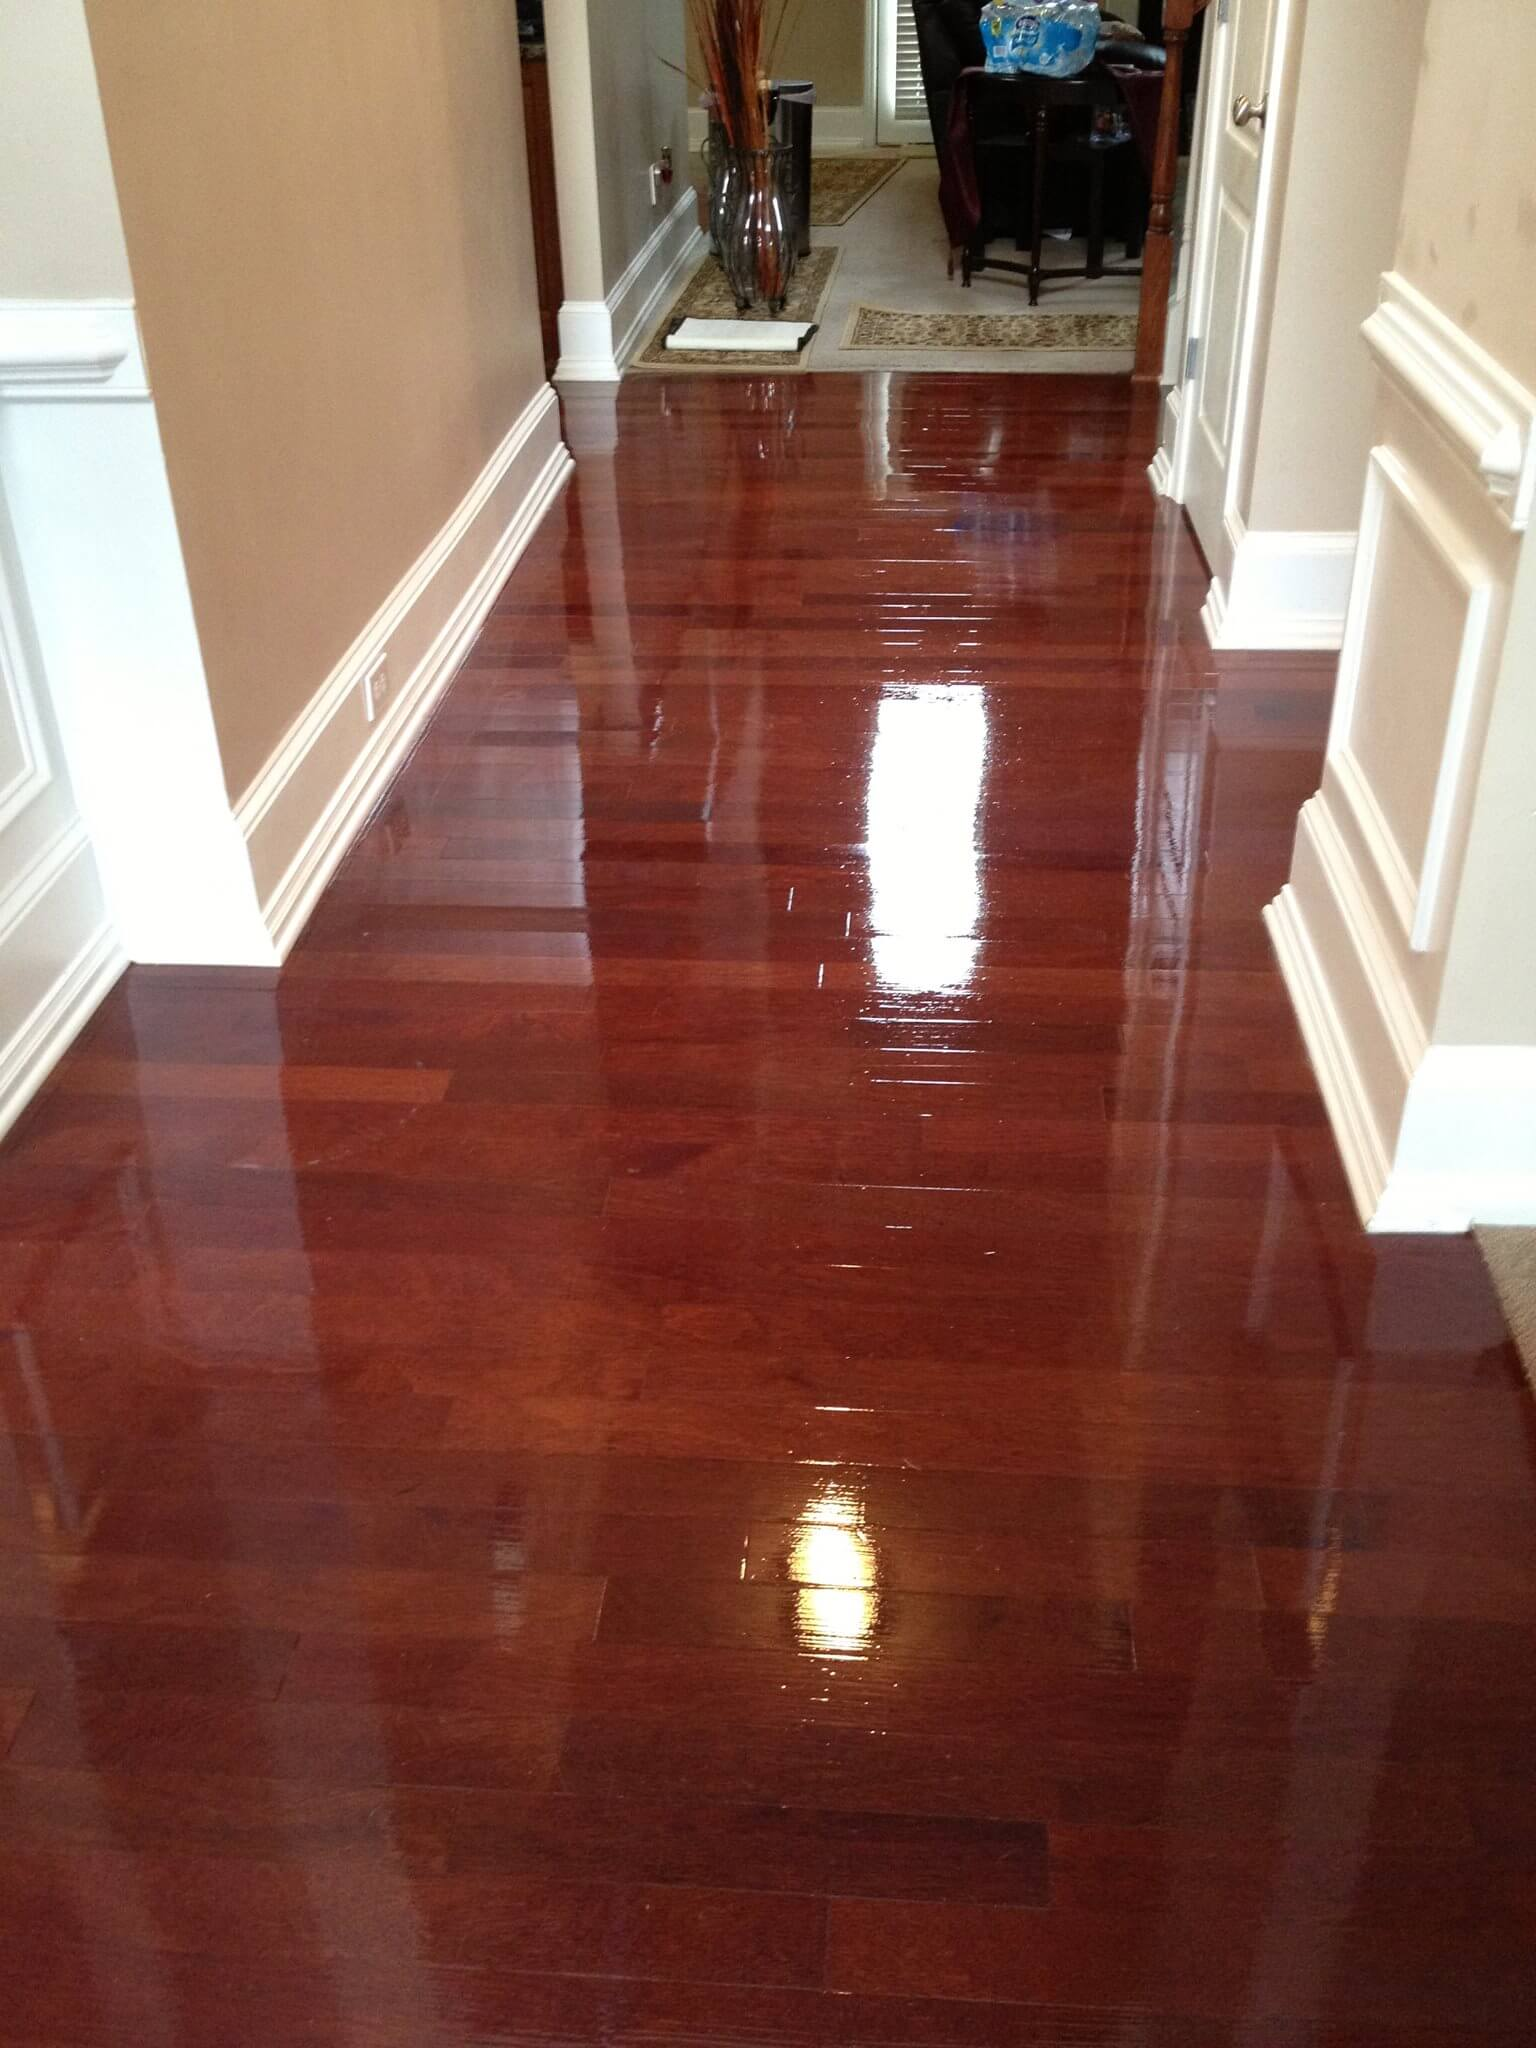 a shined up and refinished hardwood floor.